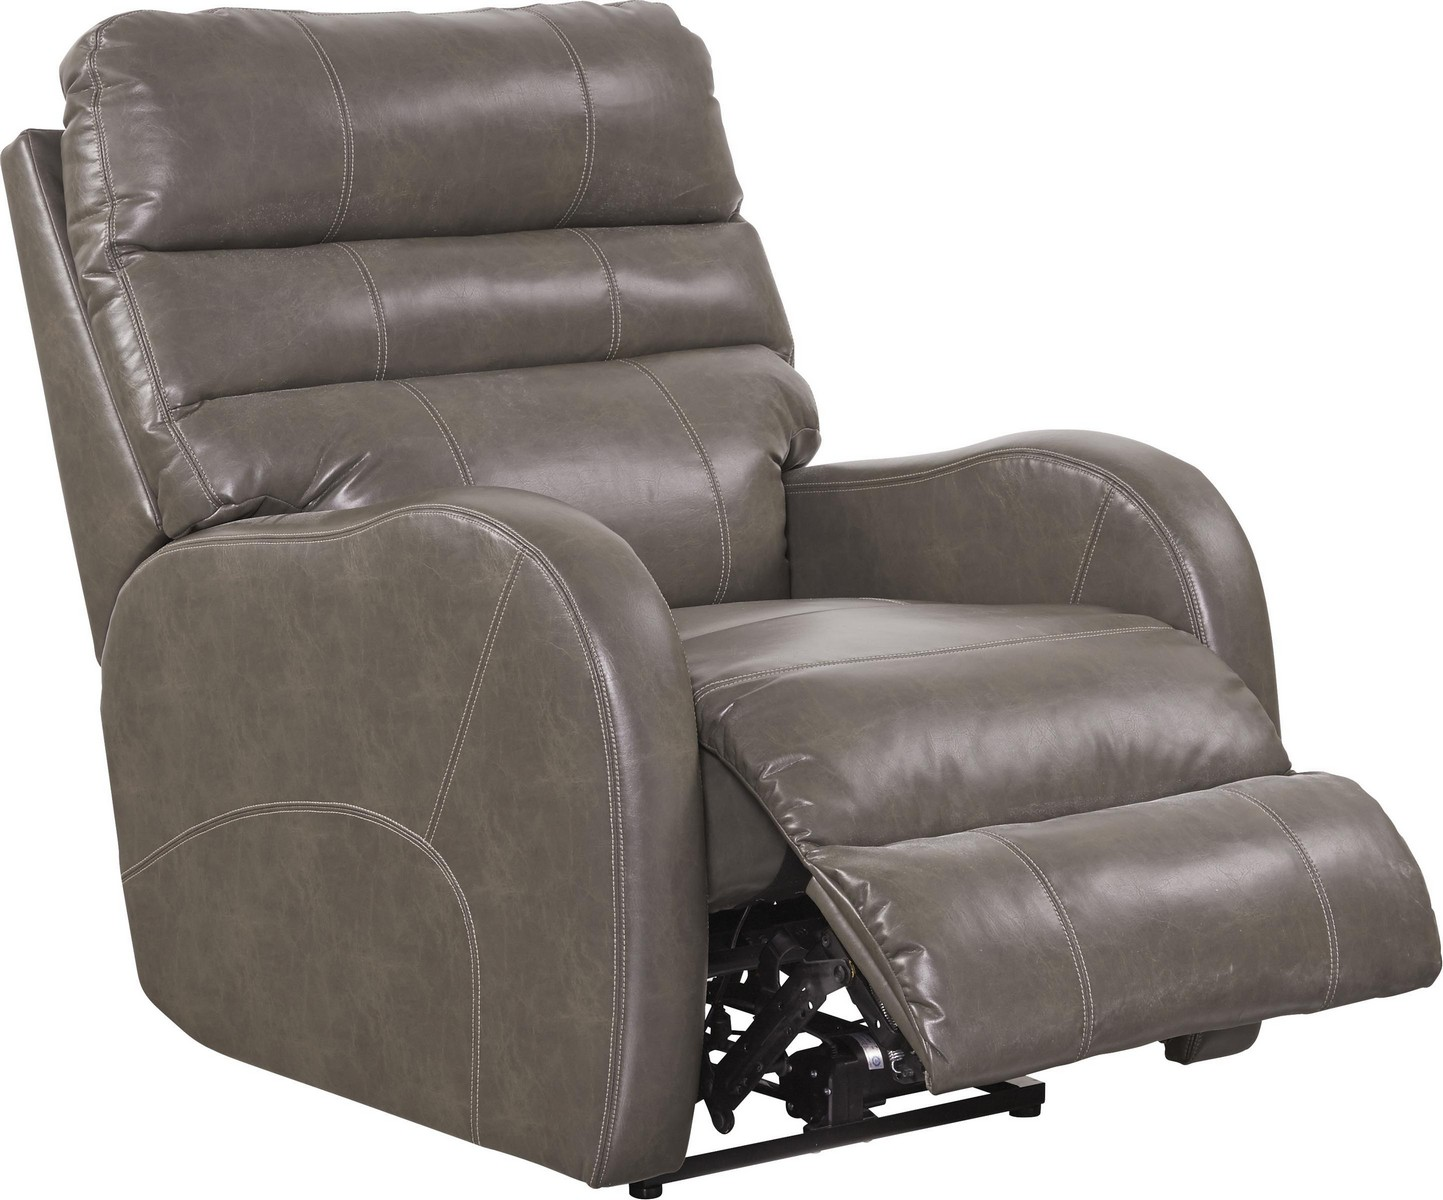 CatNapper Searcy Power Wall Hugger Recliner with USB Port - Ash